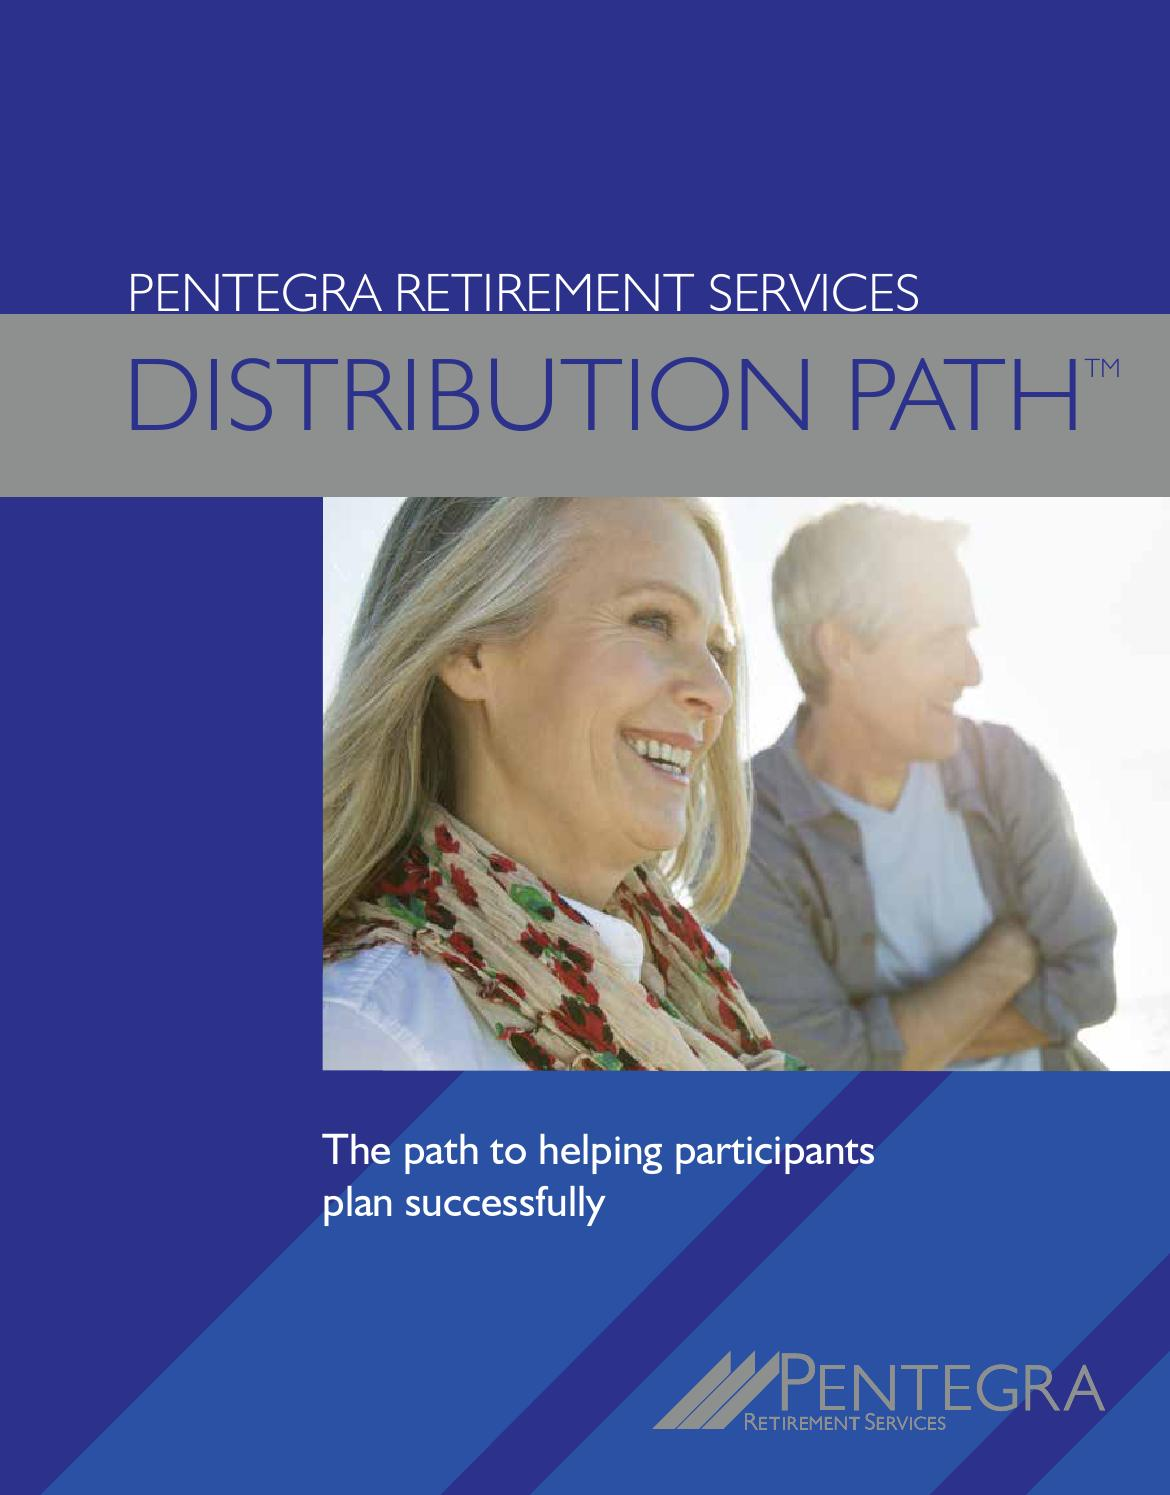 Find Your Path to Retirement